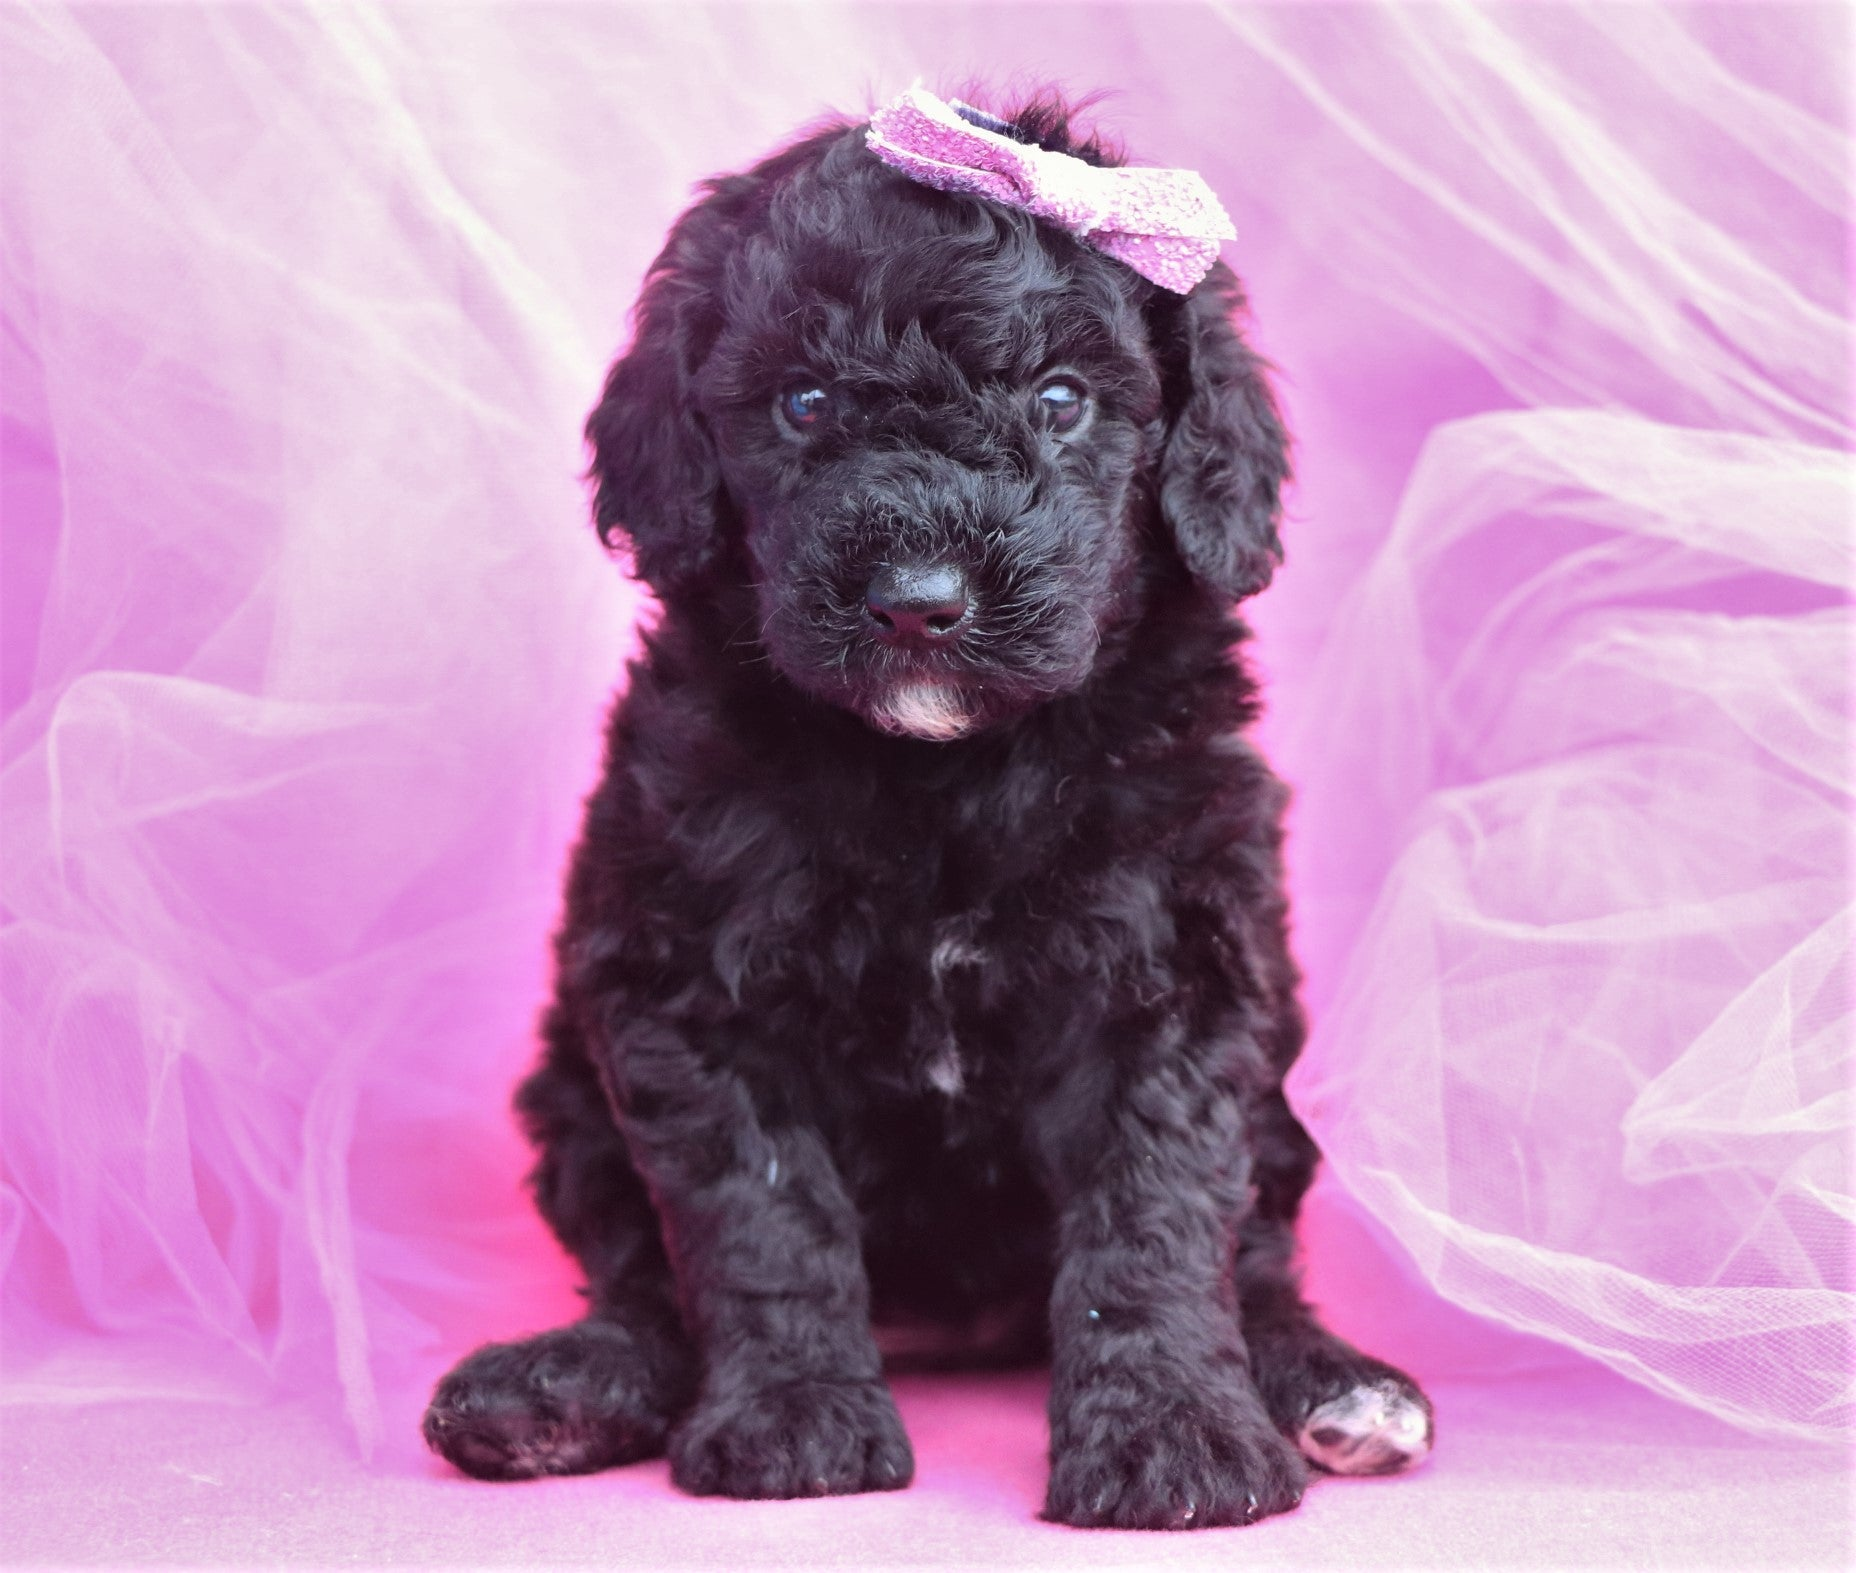 *RESERVED* Hummingbird Female F1B Sheepadoodle Puppy